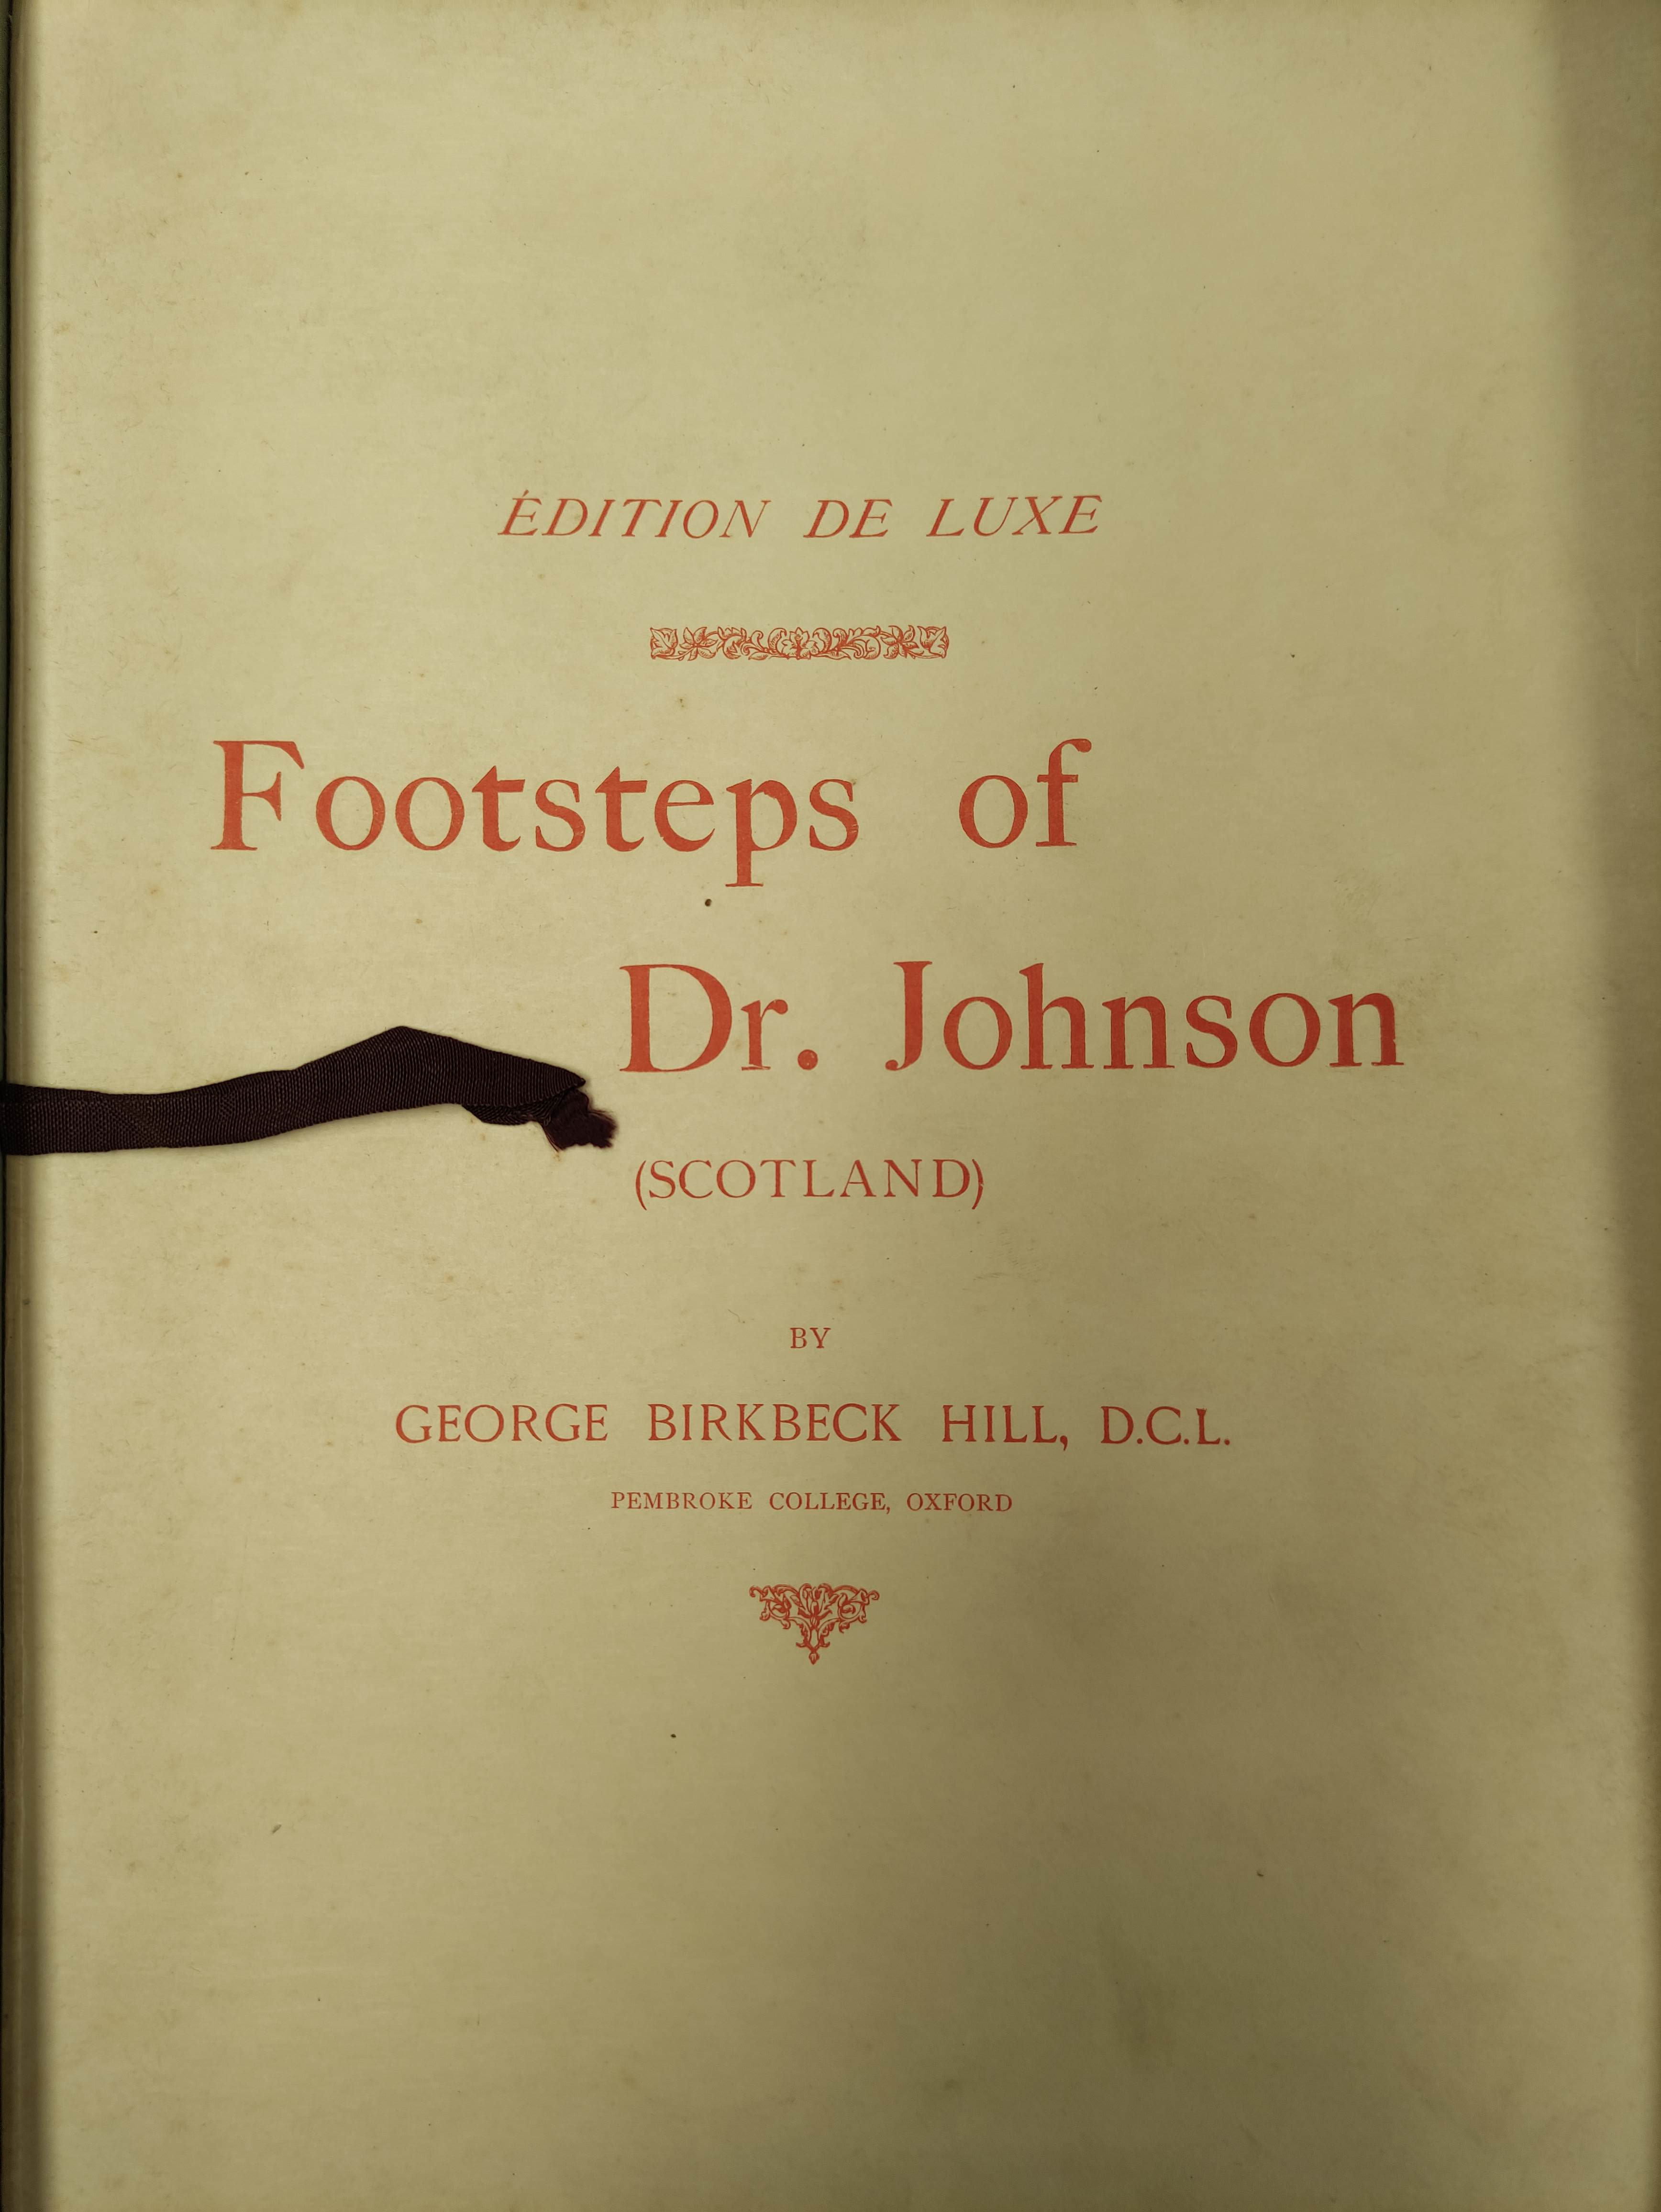 BIRKBECK HILL GEORGE.Footsteps of Dr. Johnson. Edition Deluxe. Plates. Unbound leaves in card - Image 3 of 10